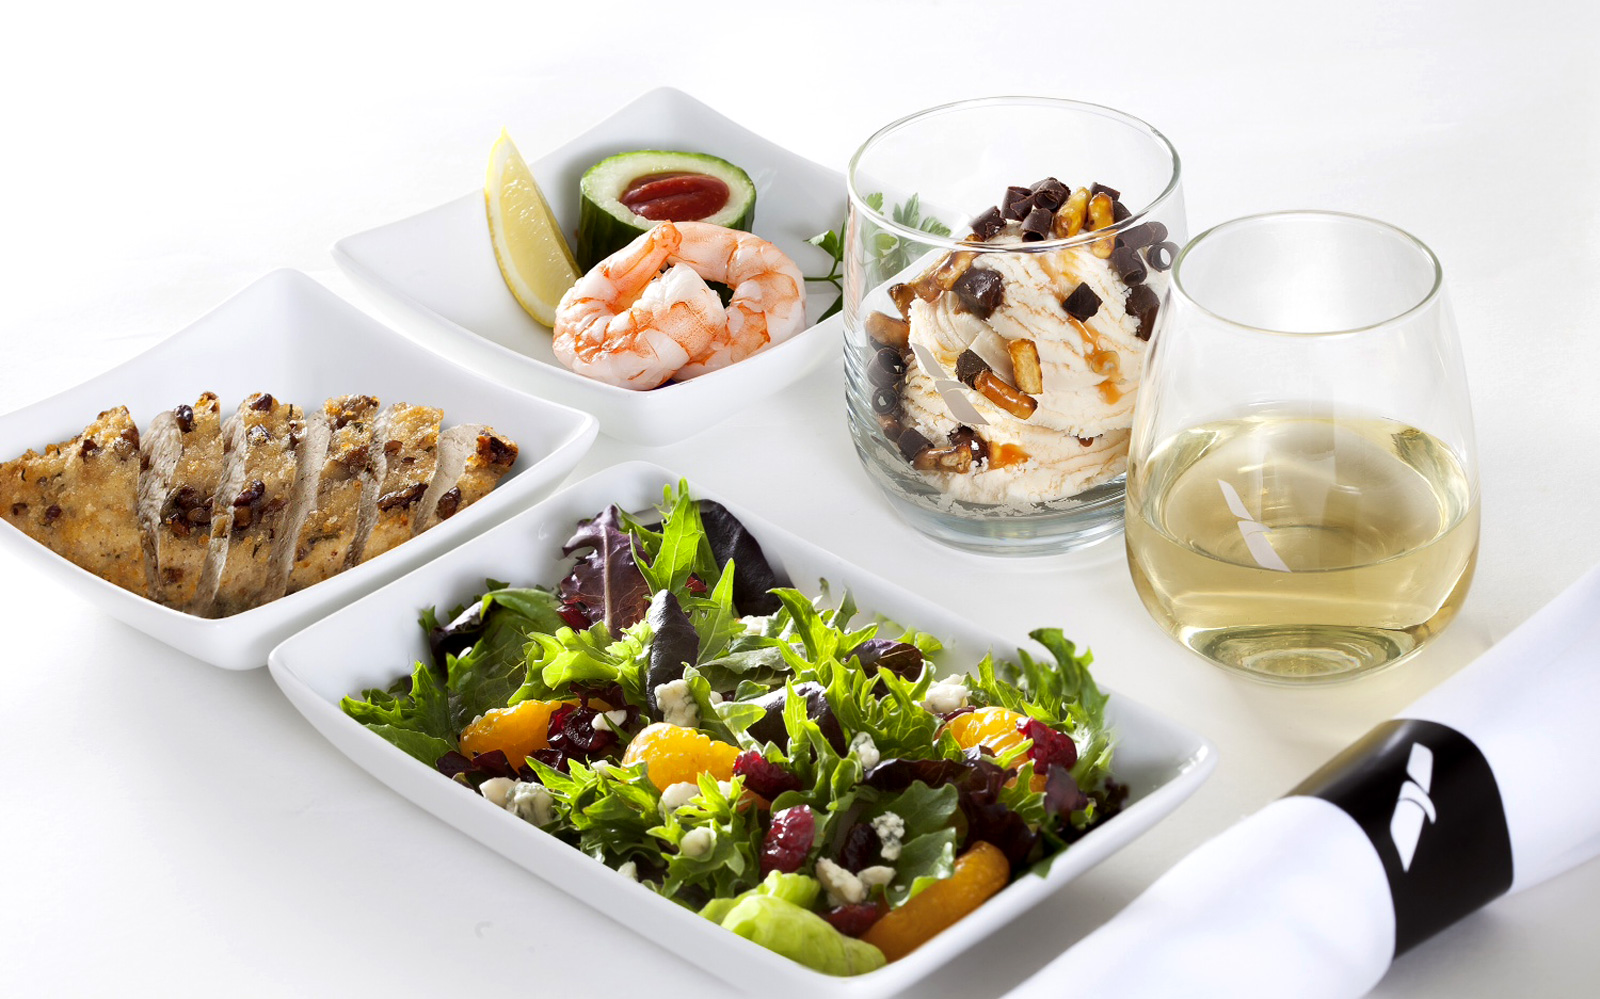 World's Best Airlines for Food: Domestic: American Airlines